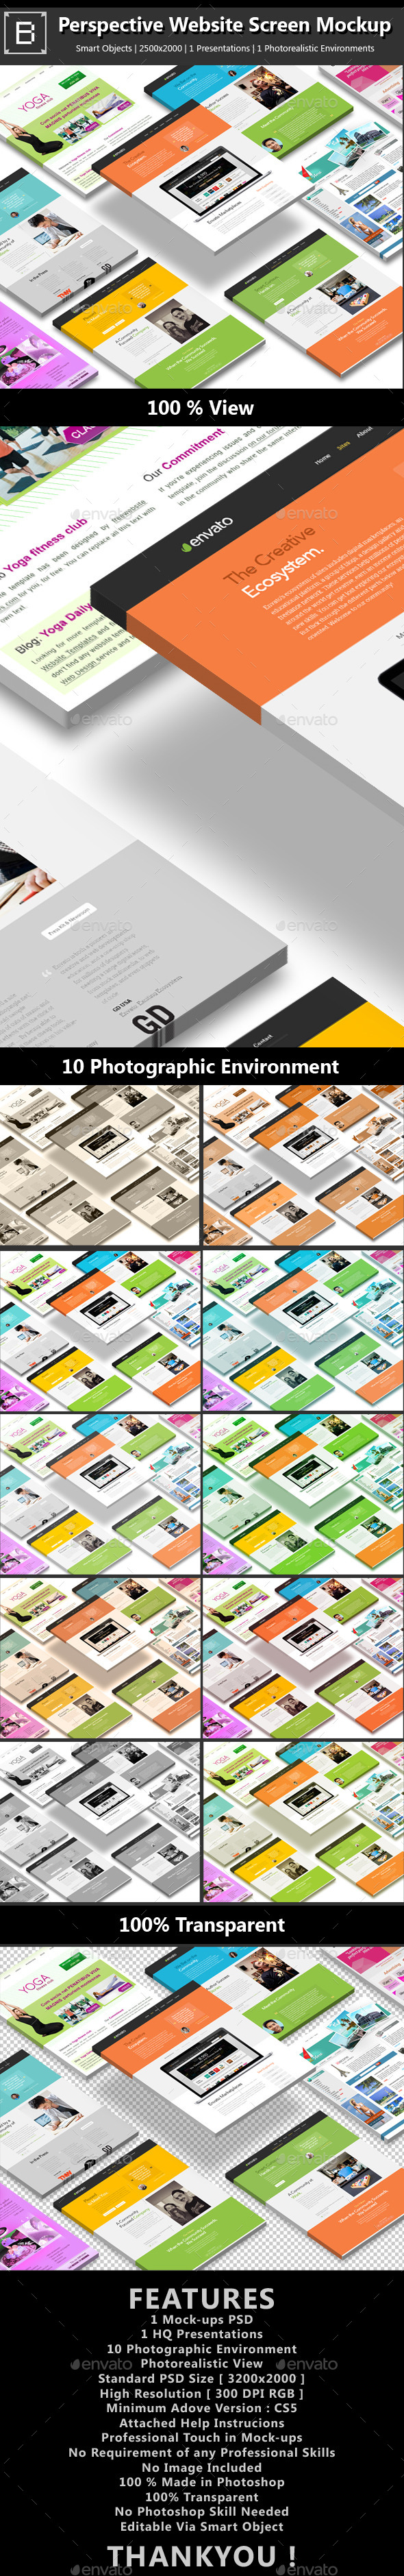 GraphicRiver Perspective Website Screen Mockup 8822963